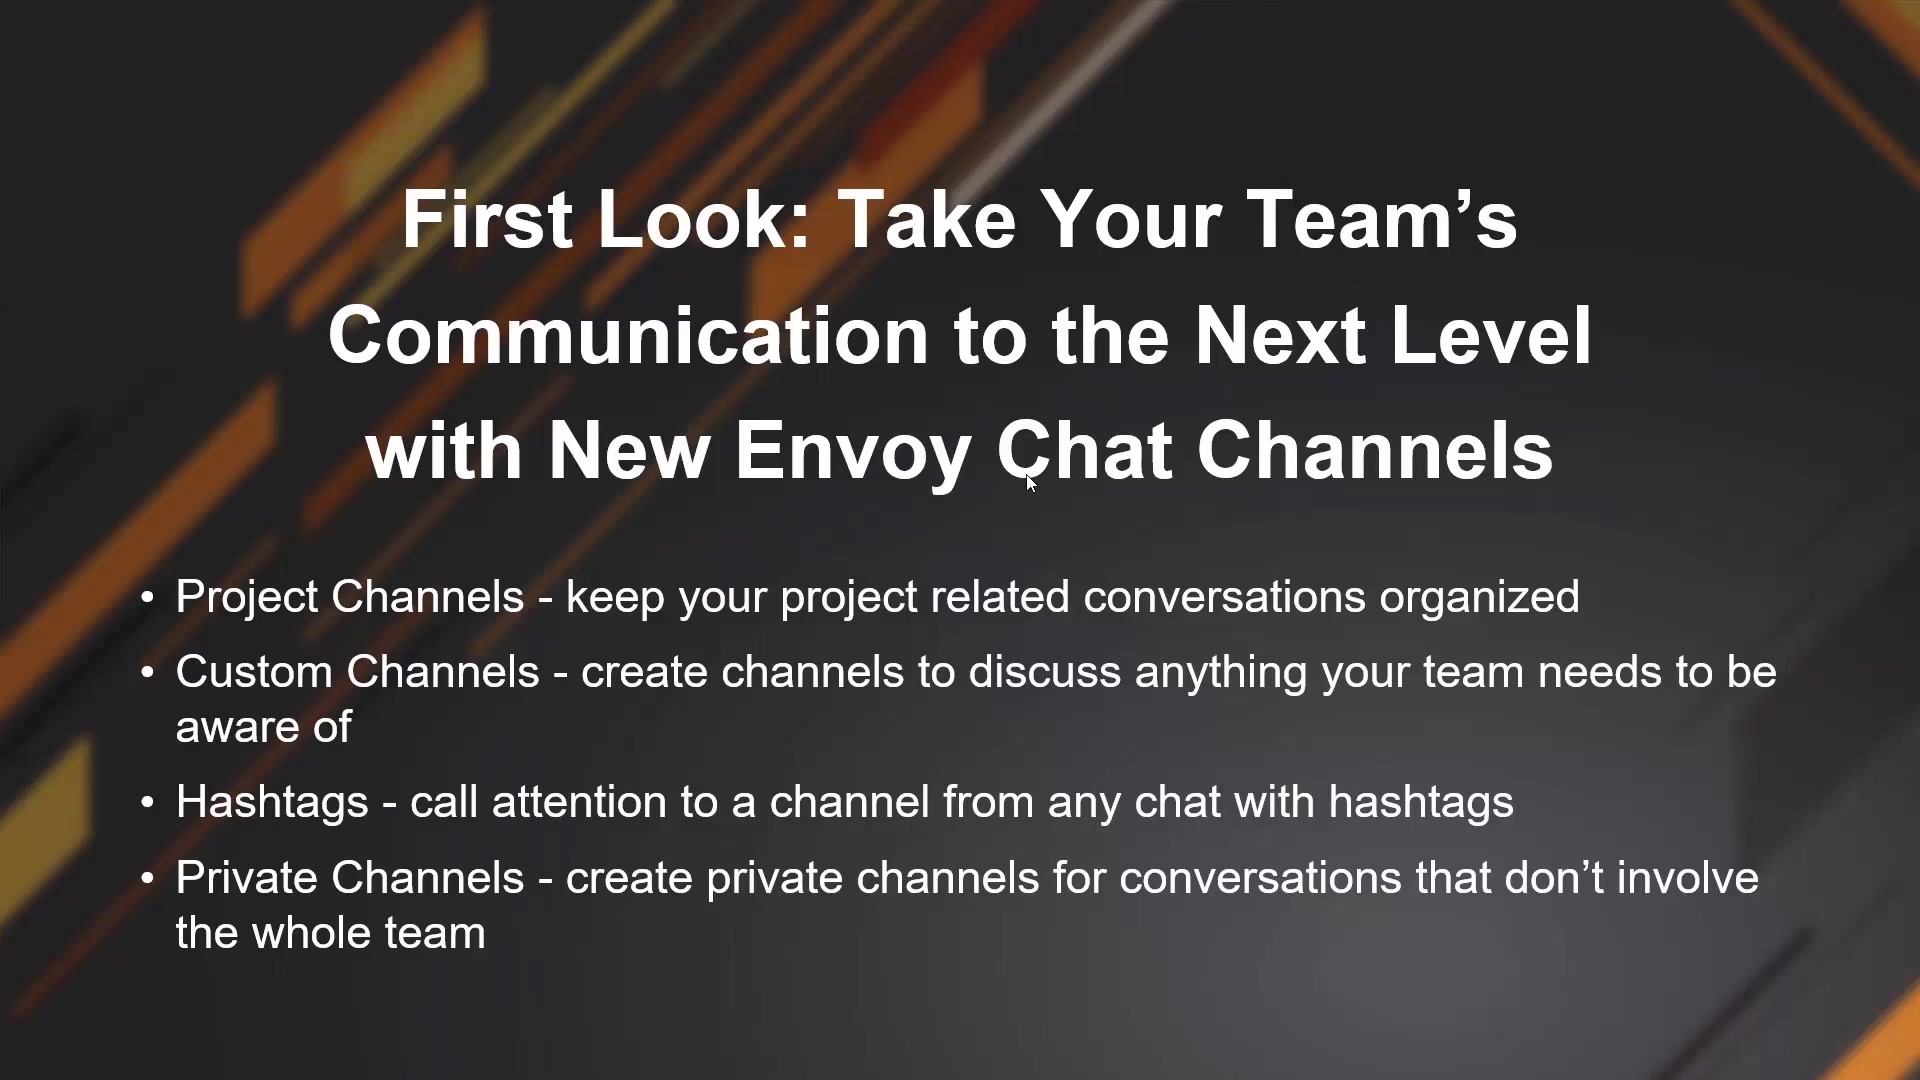 First Look - Take Your Team's Communication to the Next Level with New Envoy Chat Channels_2